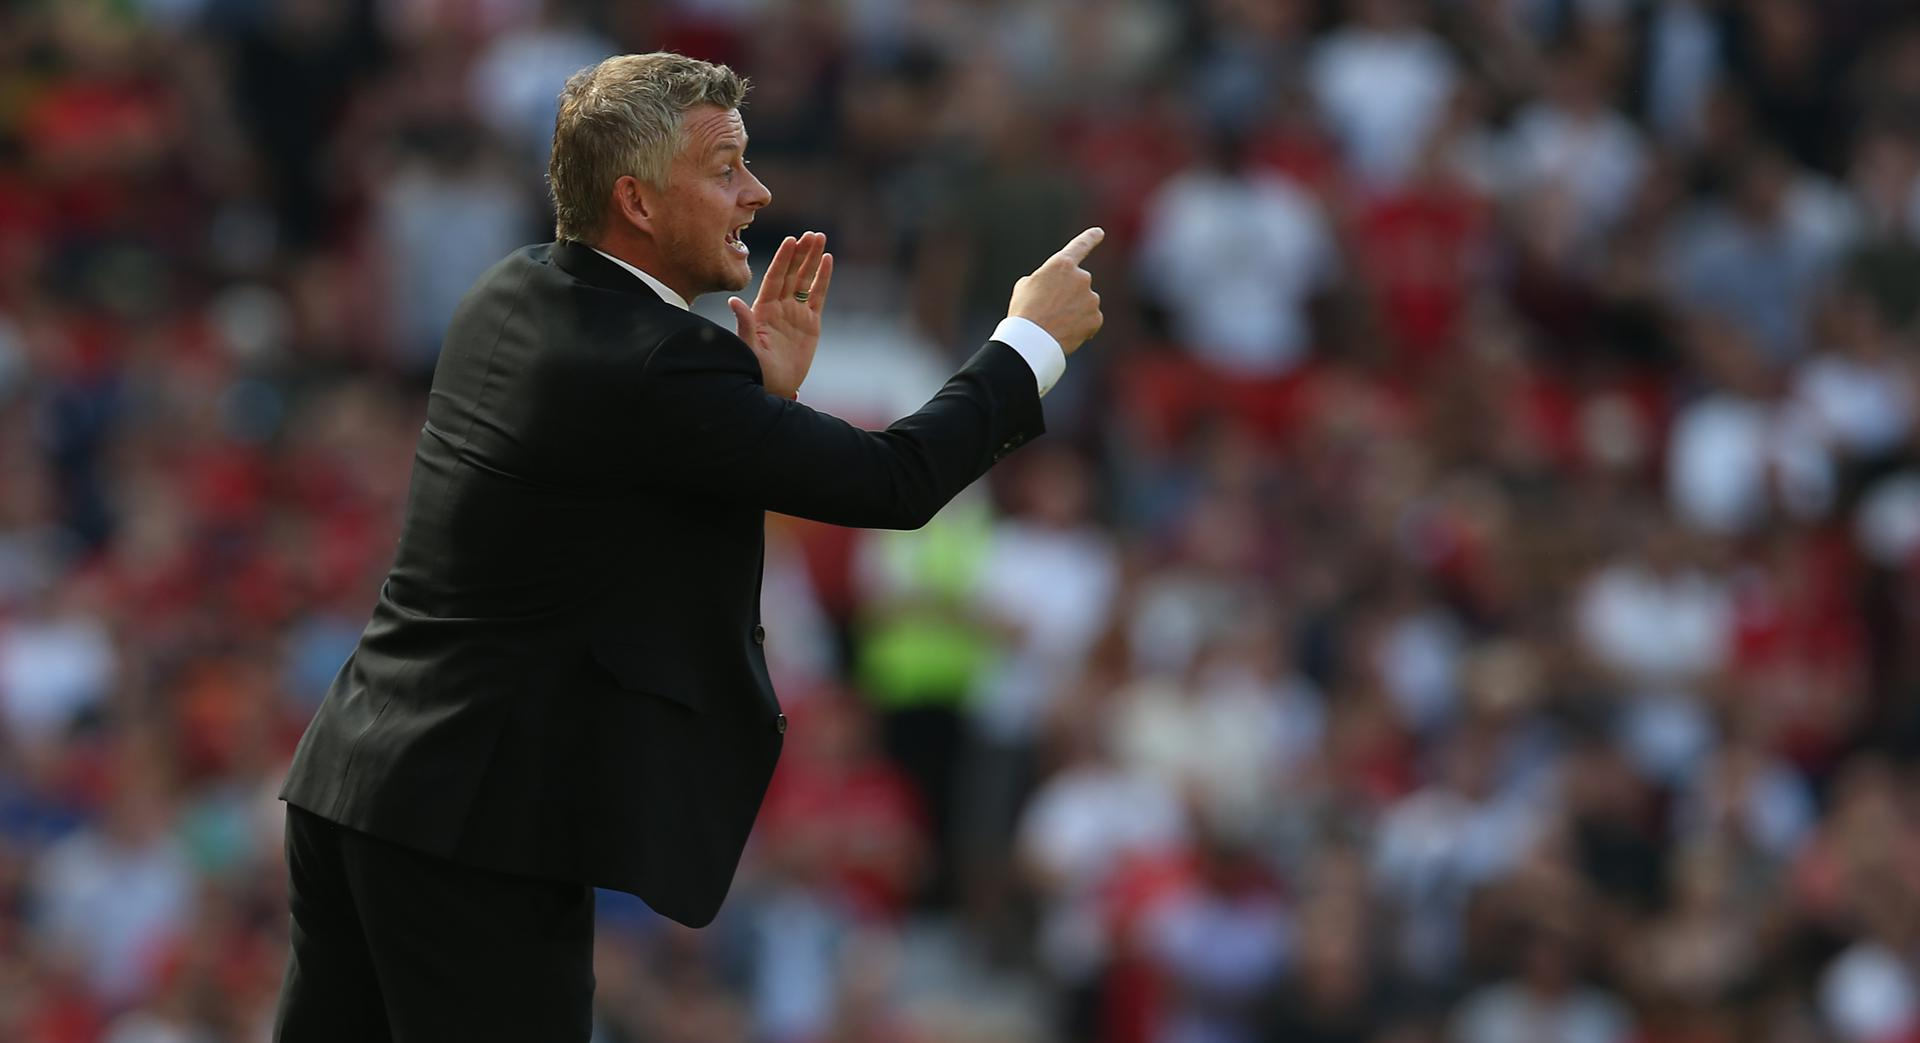 Ole Gunnar Solskjaer shouts instructions to his Manchester United players during the Premier League game against Crystal Palace at Old Trafford